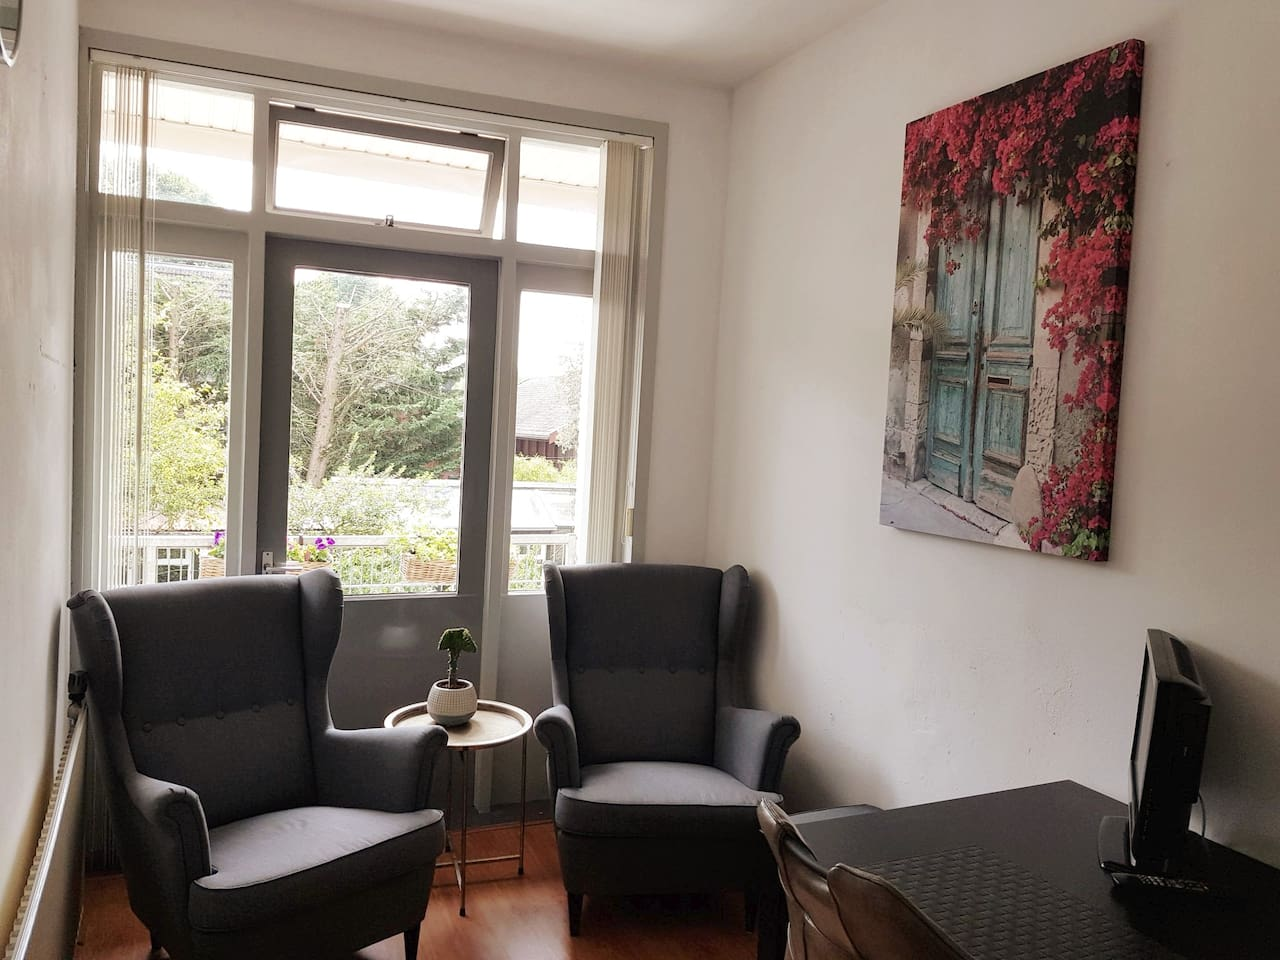 The livingroom of the apartment at the backside of the house. There is a sitting area and a large table . The apartment is suitable for 2 perons.  De huiskamer van het appartement aan de achterkant van de woning.  Het appartement is voor 2 personen.